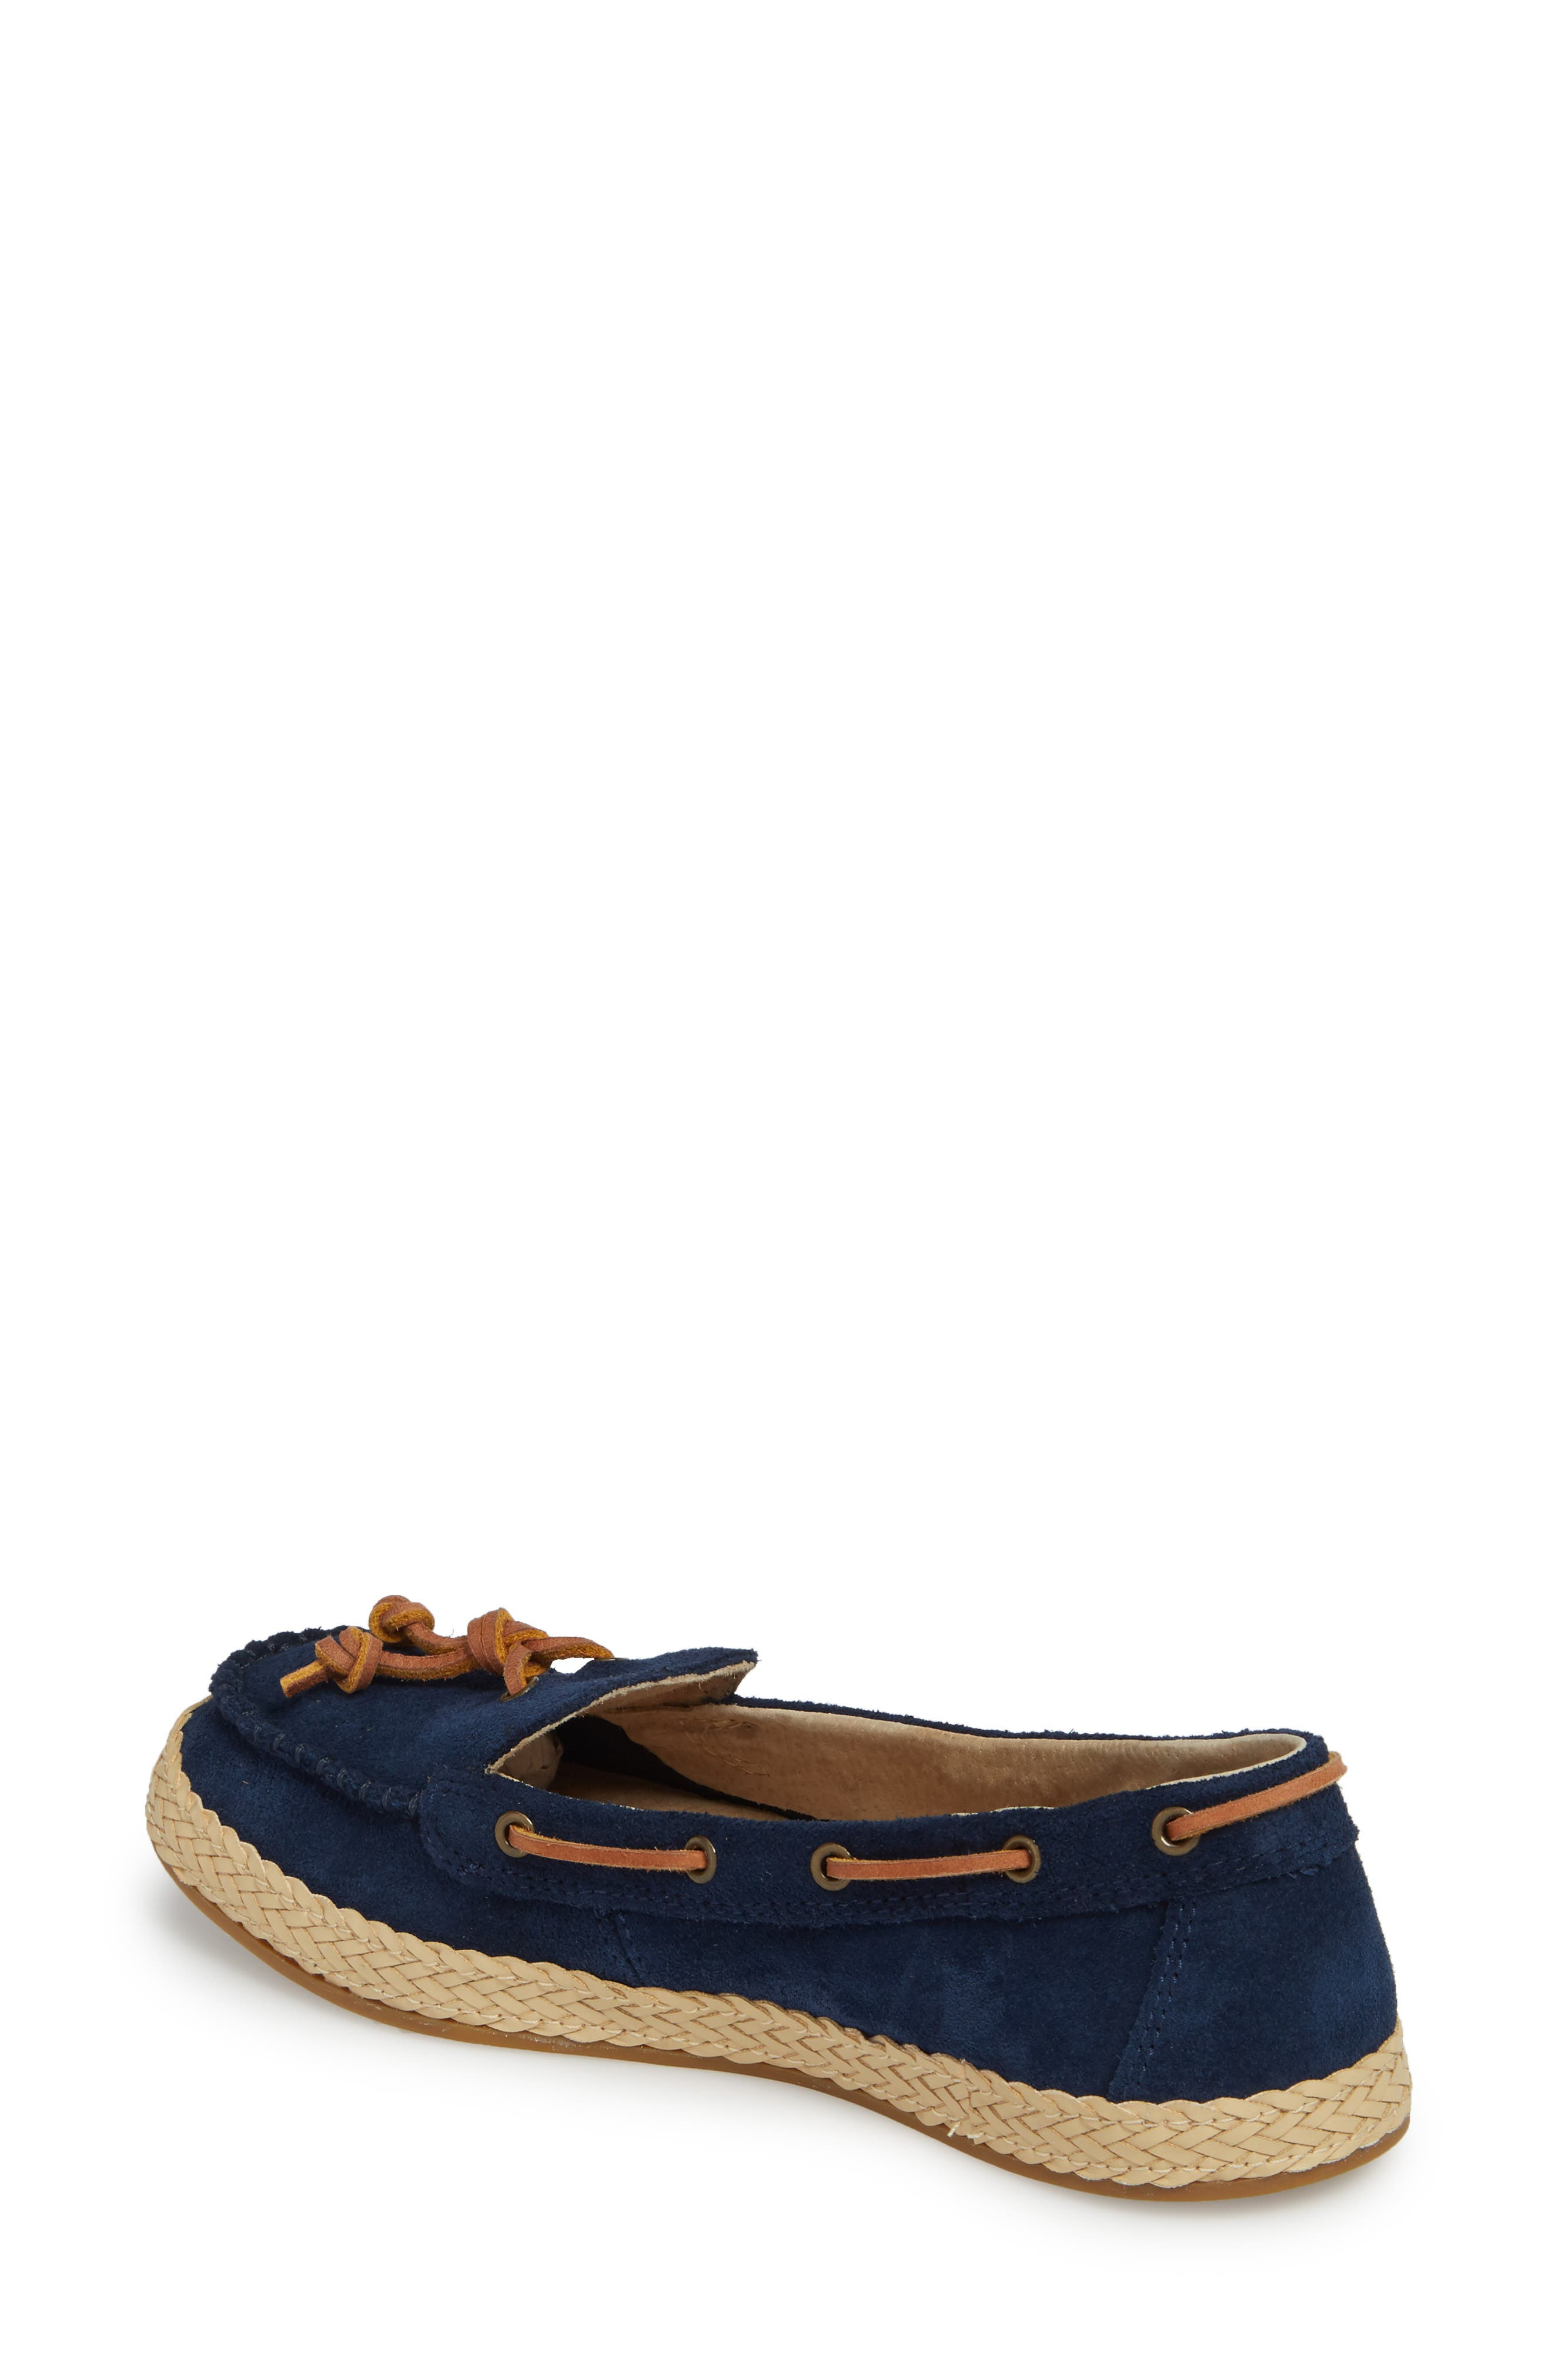 Channtal Loafer,                             Alternate thumbnail 2, color,                             Navy Suede